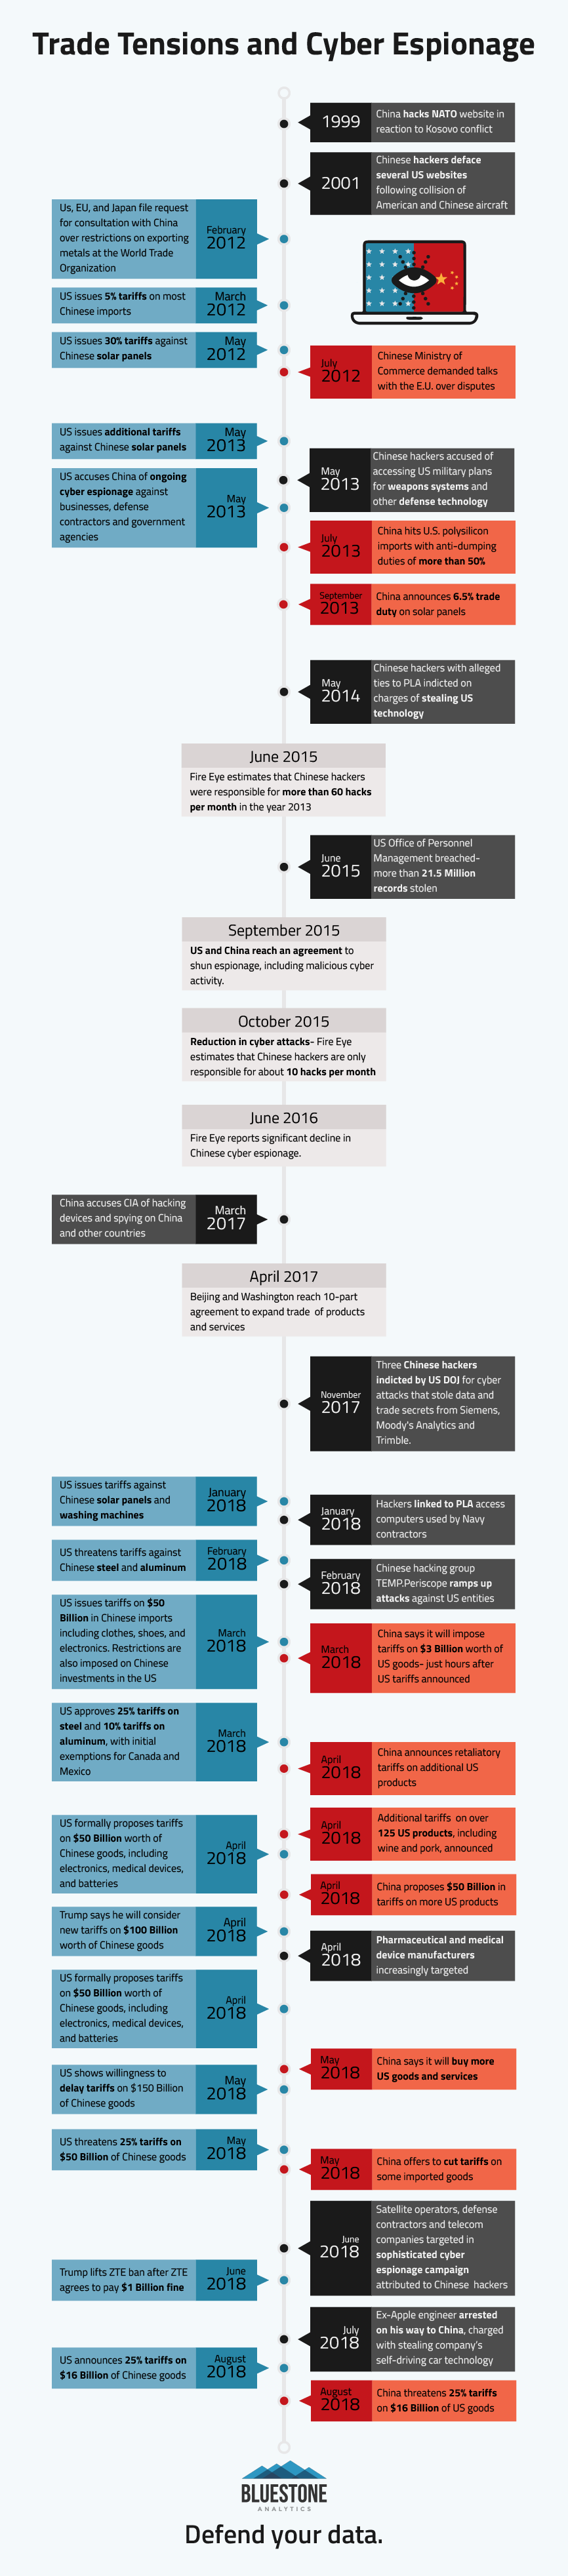 Timeline of US China trade tensions and cyber attacks